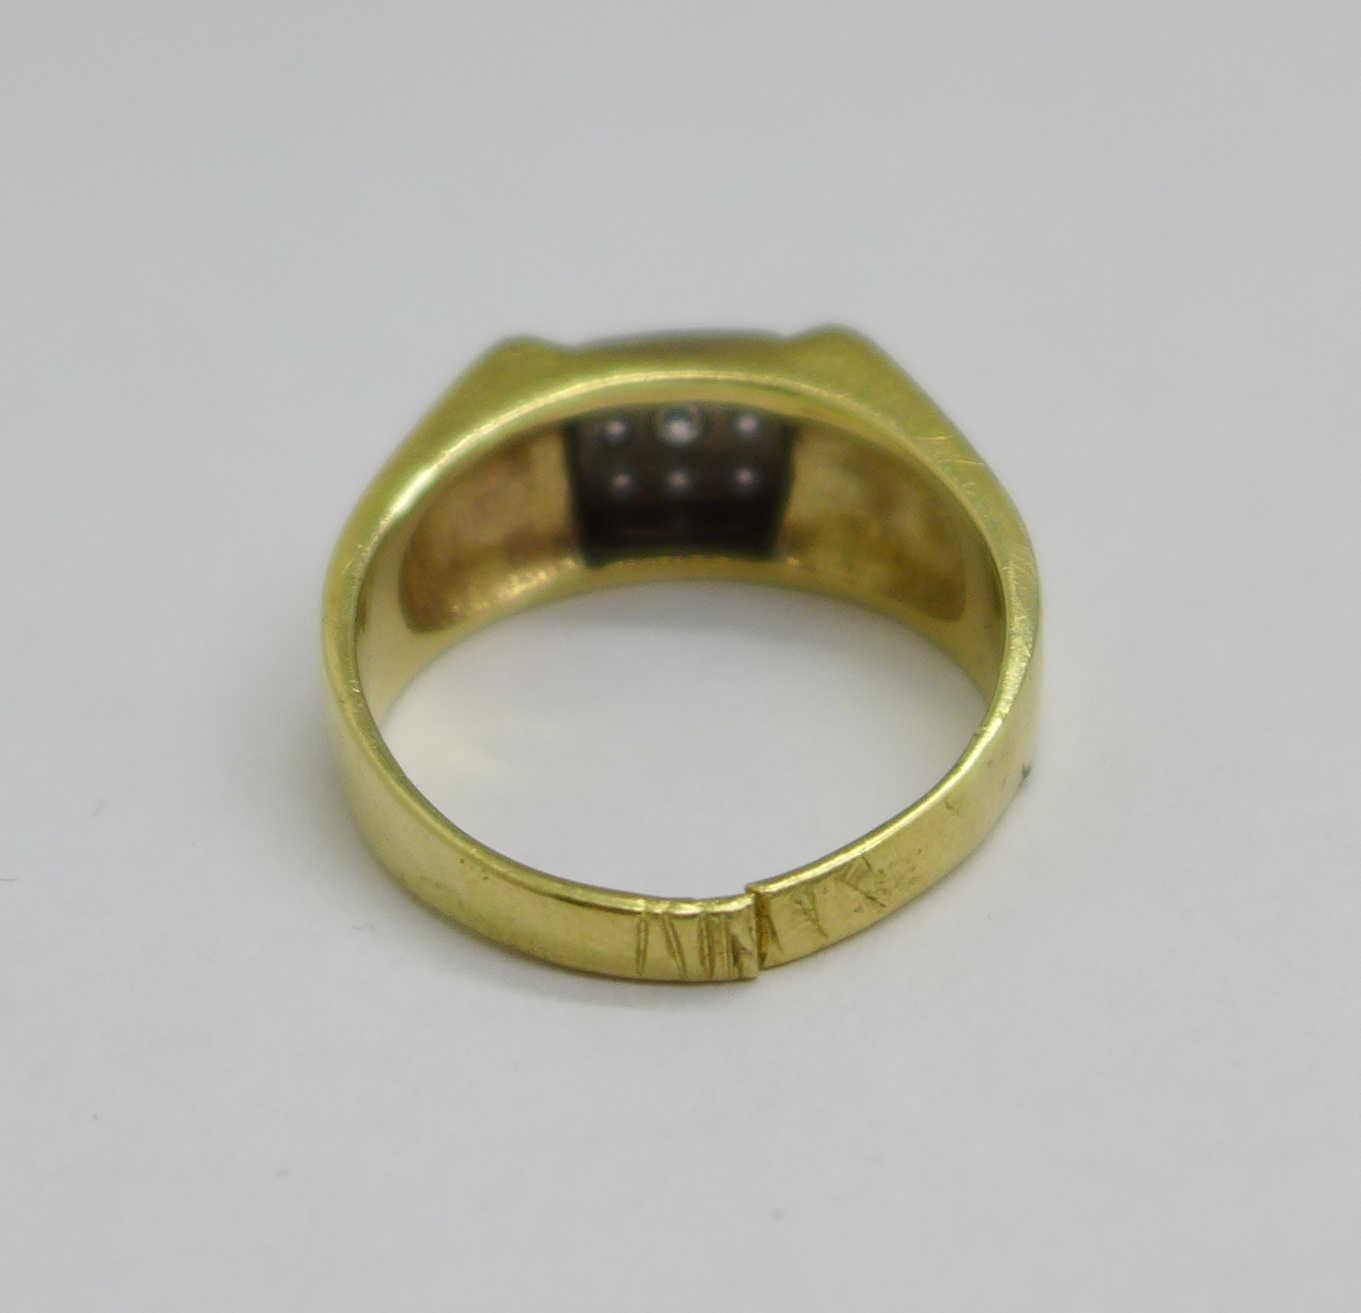 A 14ct gold and white stone ring, 7.9g, shank a/f - Image 4 of 4